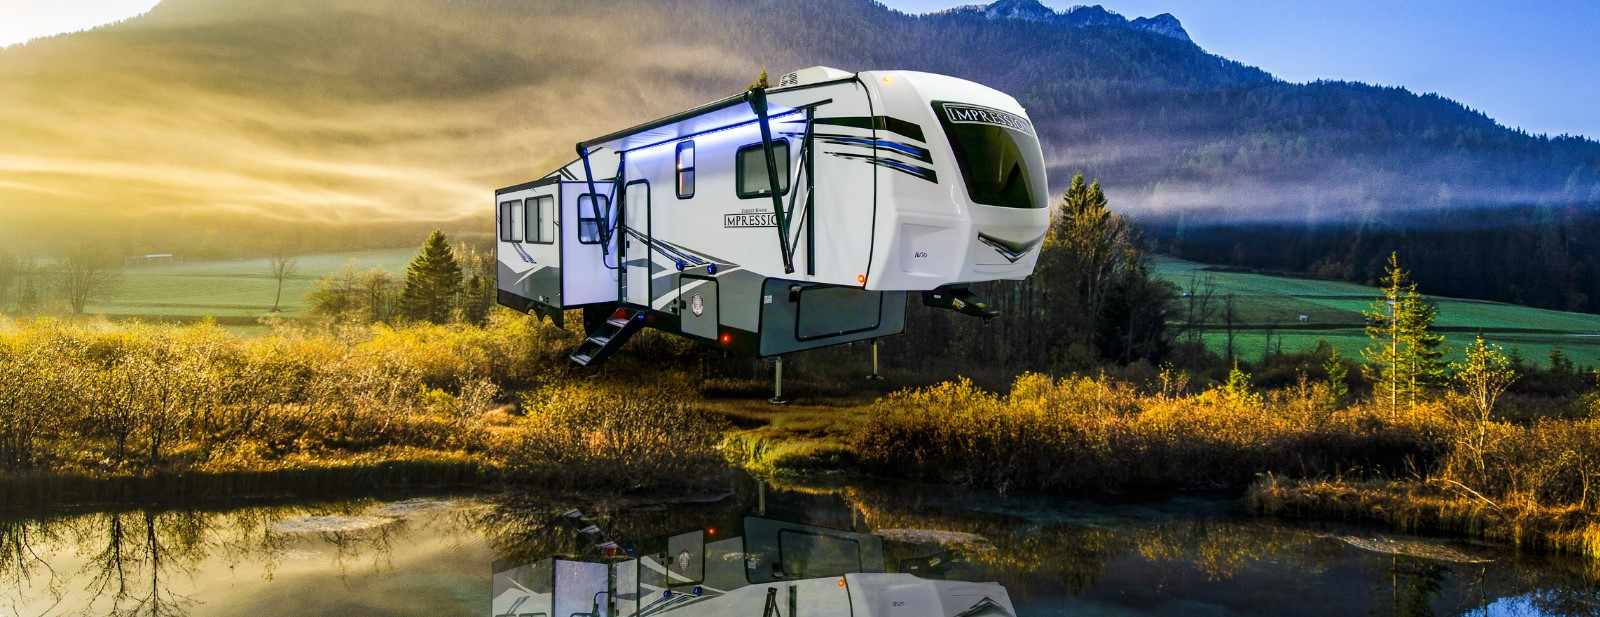 Impression | Forest River RV - Manufacturer of Travel